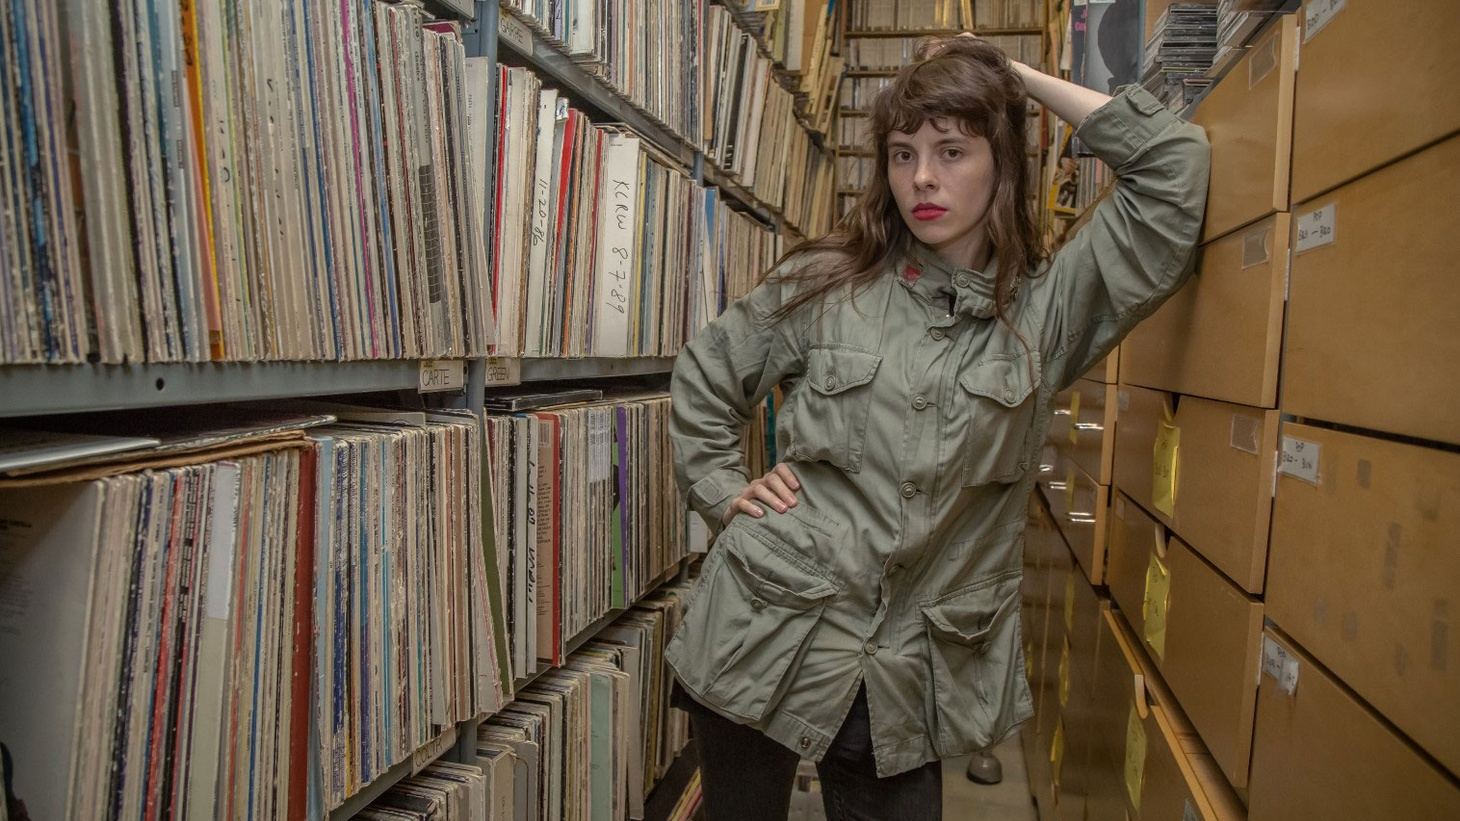 Teresa Suarez -- aka Teri Gender Bender of the Mexican garage punk band Le Butcherettes -- will be stopping by the studio for a Guest DJ set. She'll be selecting tunes for the entire show, including a lot of tracks from Mexico and France.